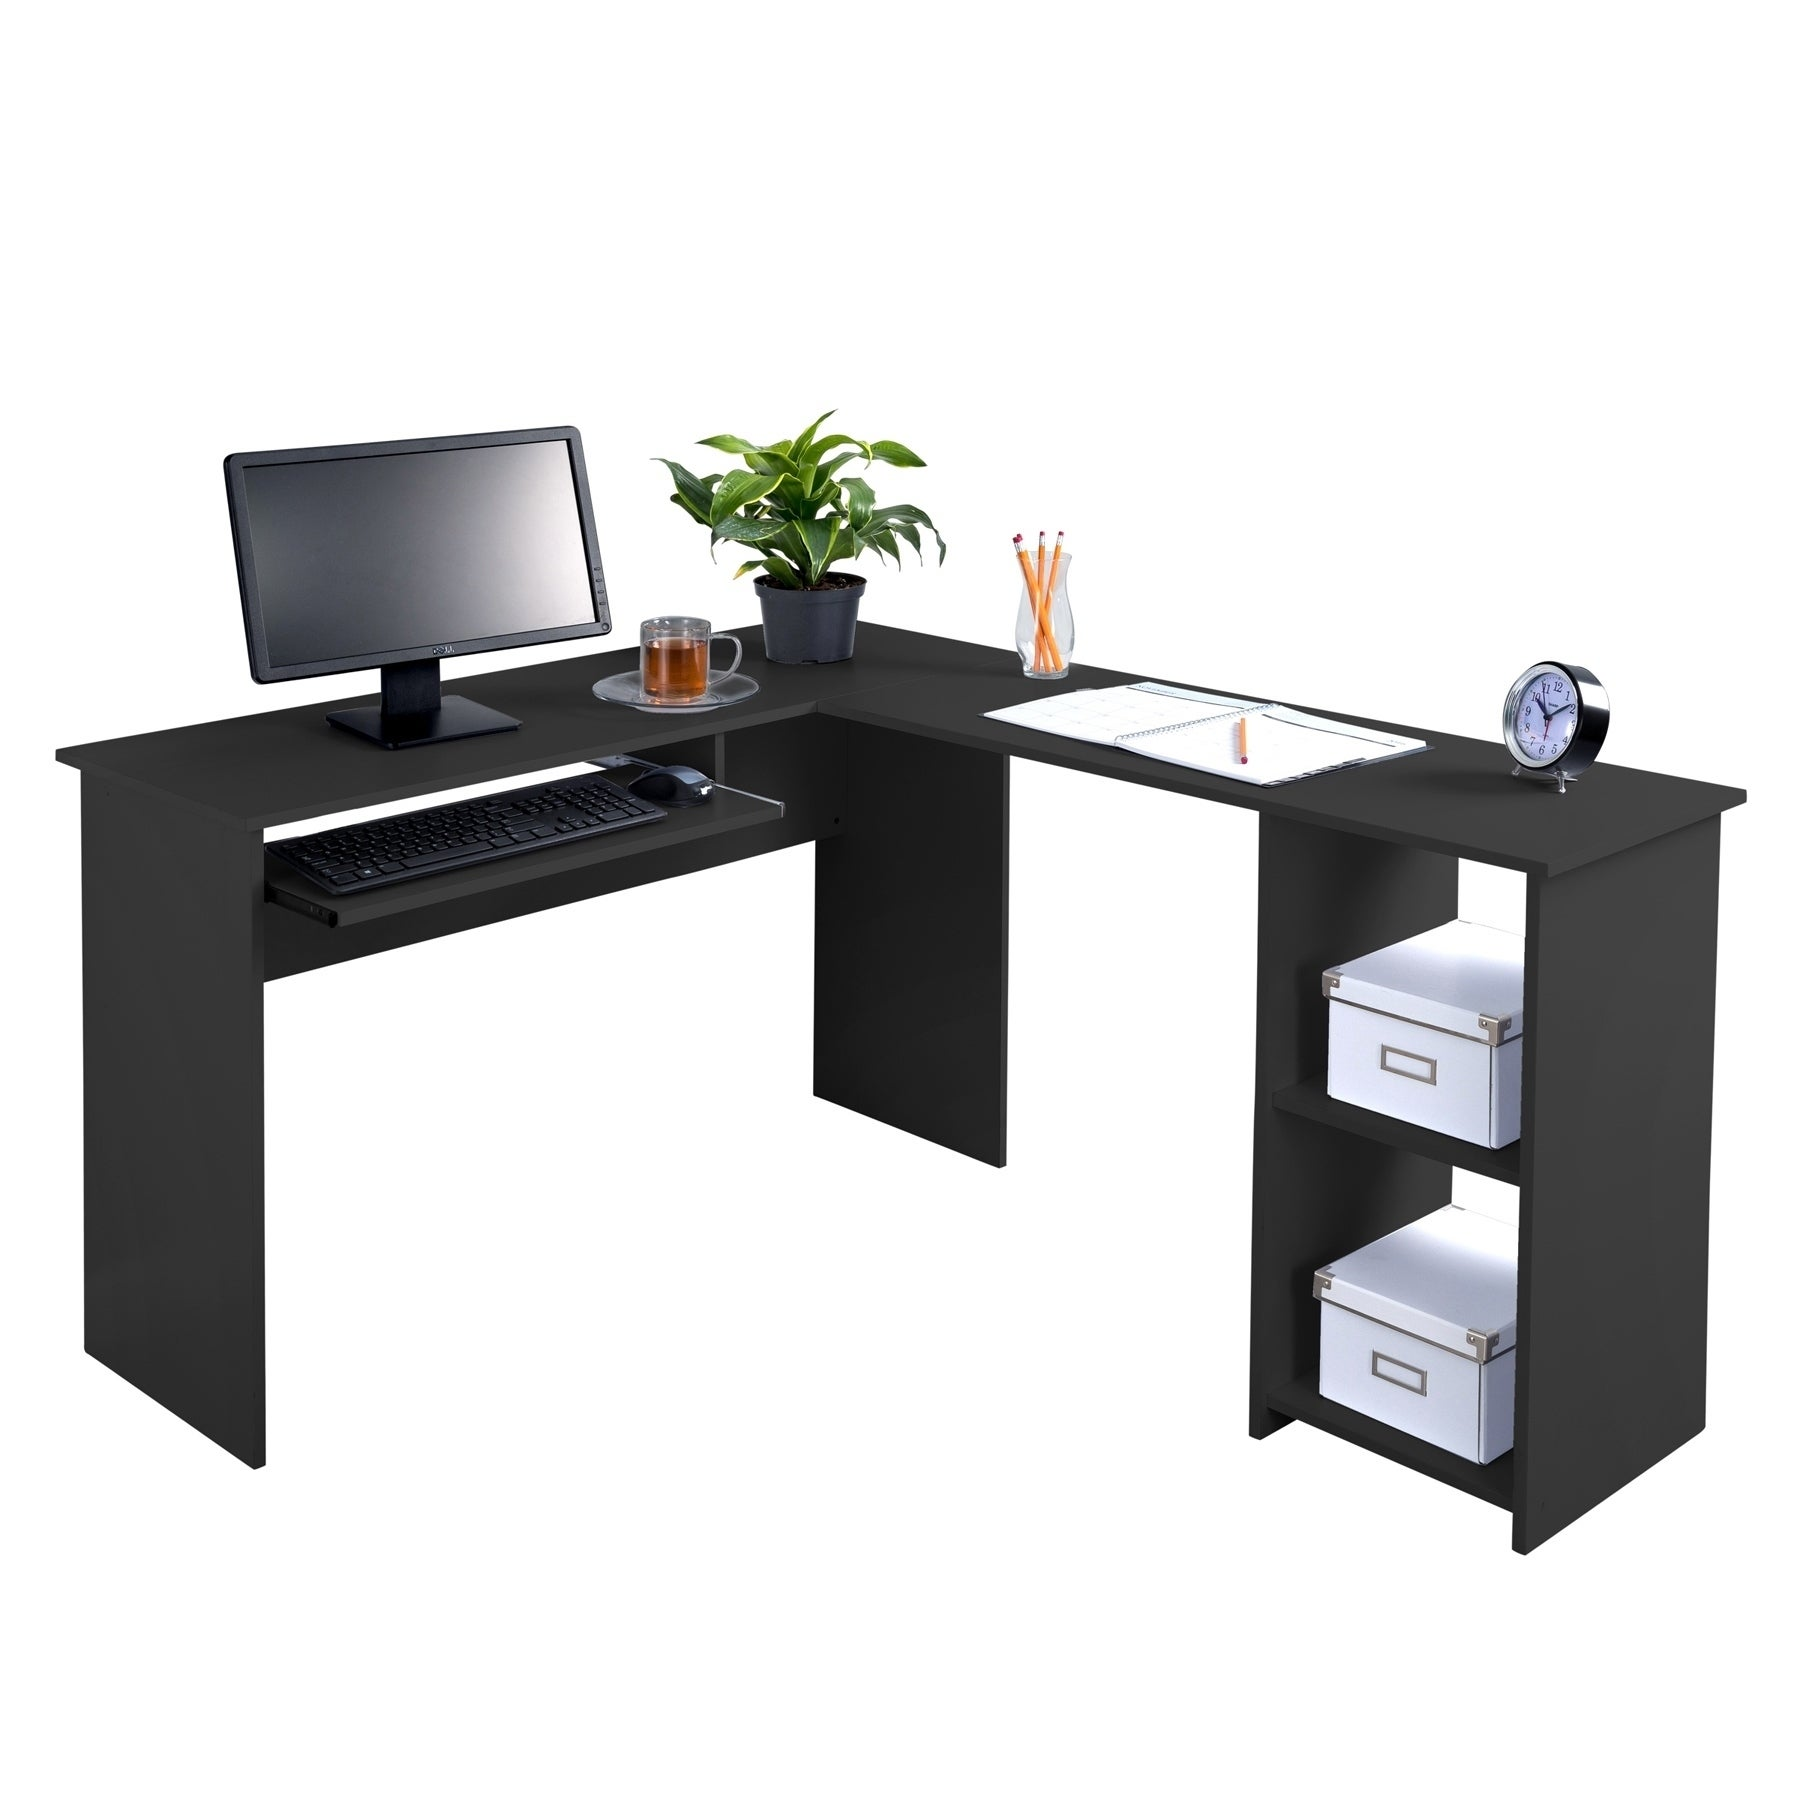 Genial Shop Fineboard L Shaped Office Corner Desk 2 Side Shelves   Free Shipping  Today   Overstock.com   18778846